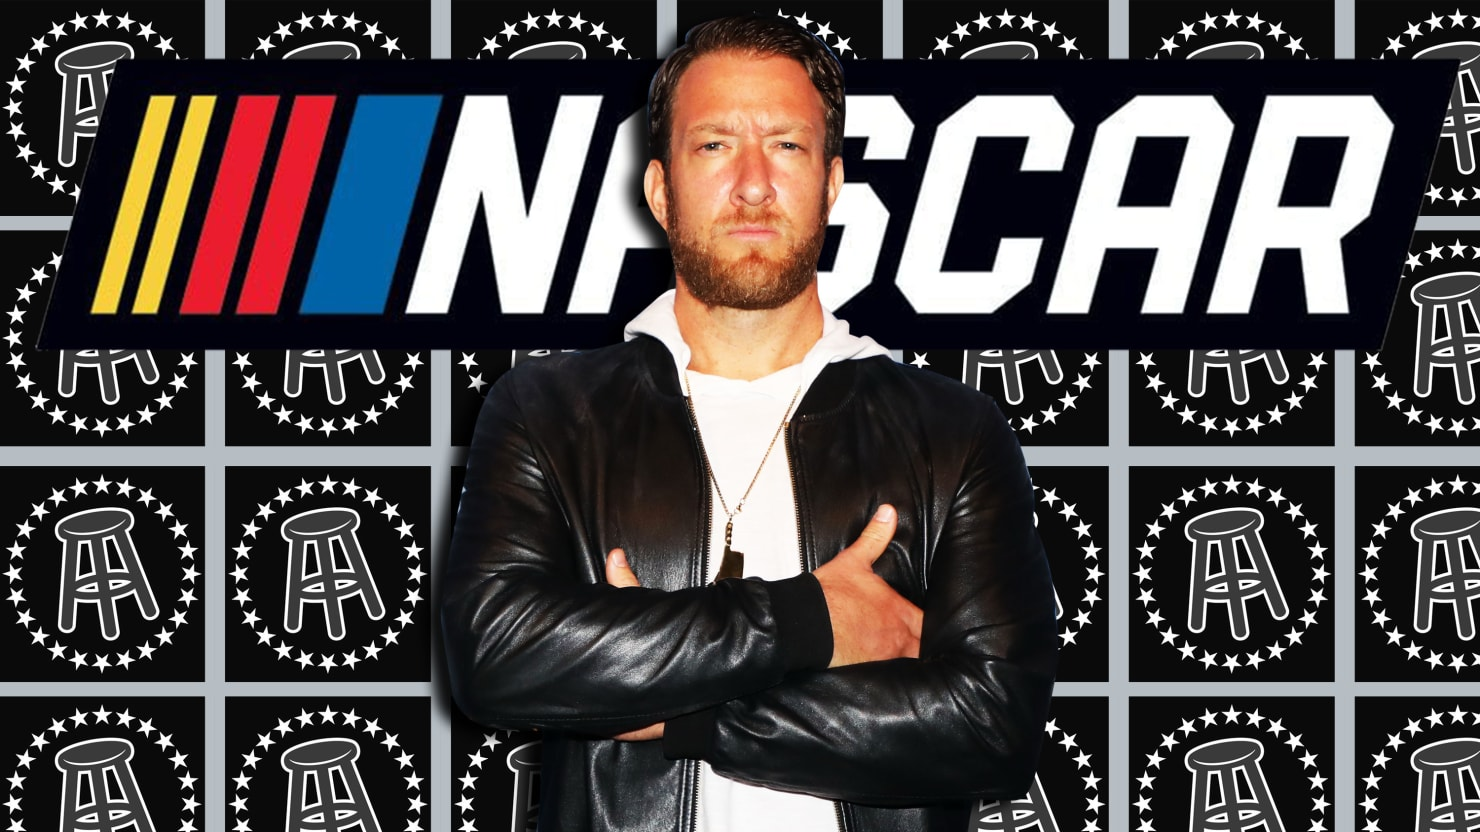 Barstool Goons Follow Founder's Order to 'Attack' NASCAR Reporter